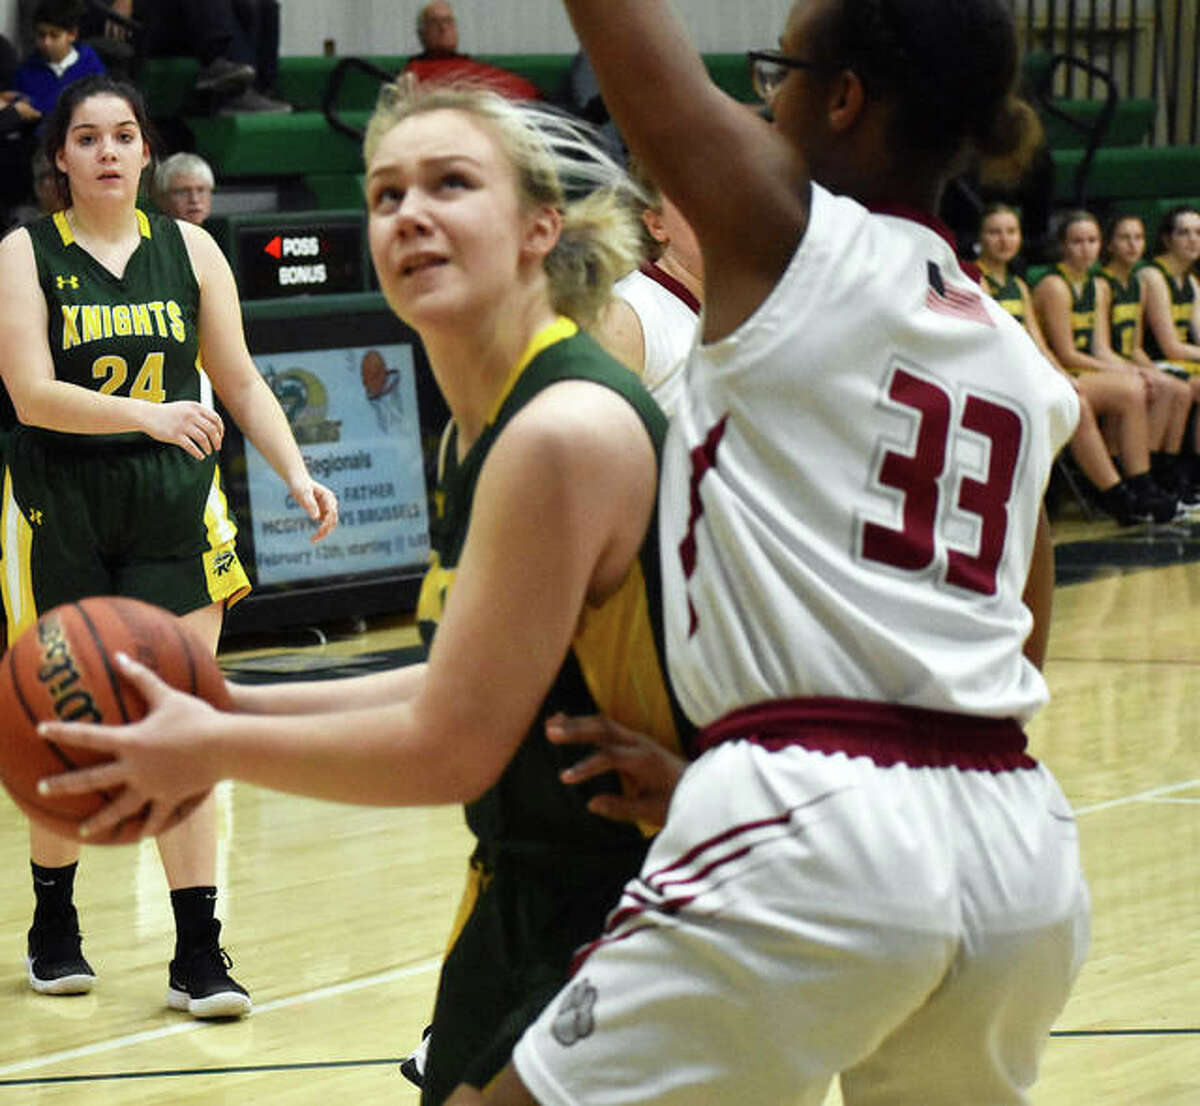 Metro-East Lutheran forward Jennifer Leitner looks to put up a shot over Dupo center Olivia Heidelberg in the first quarter.